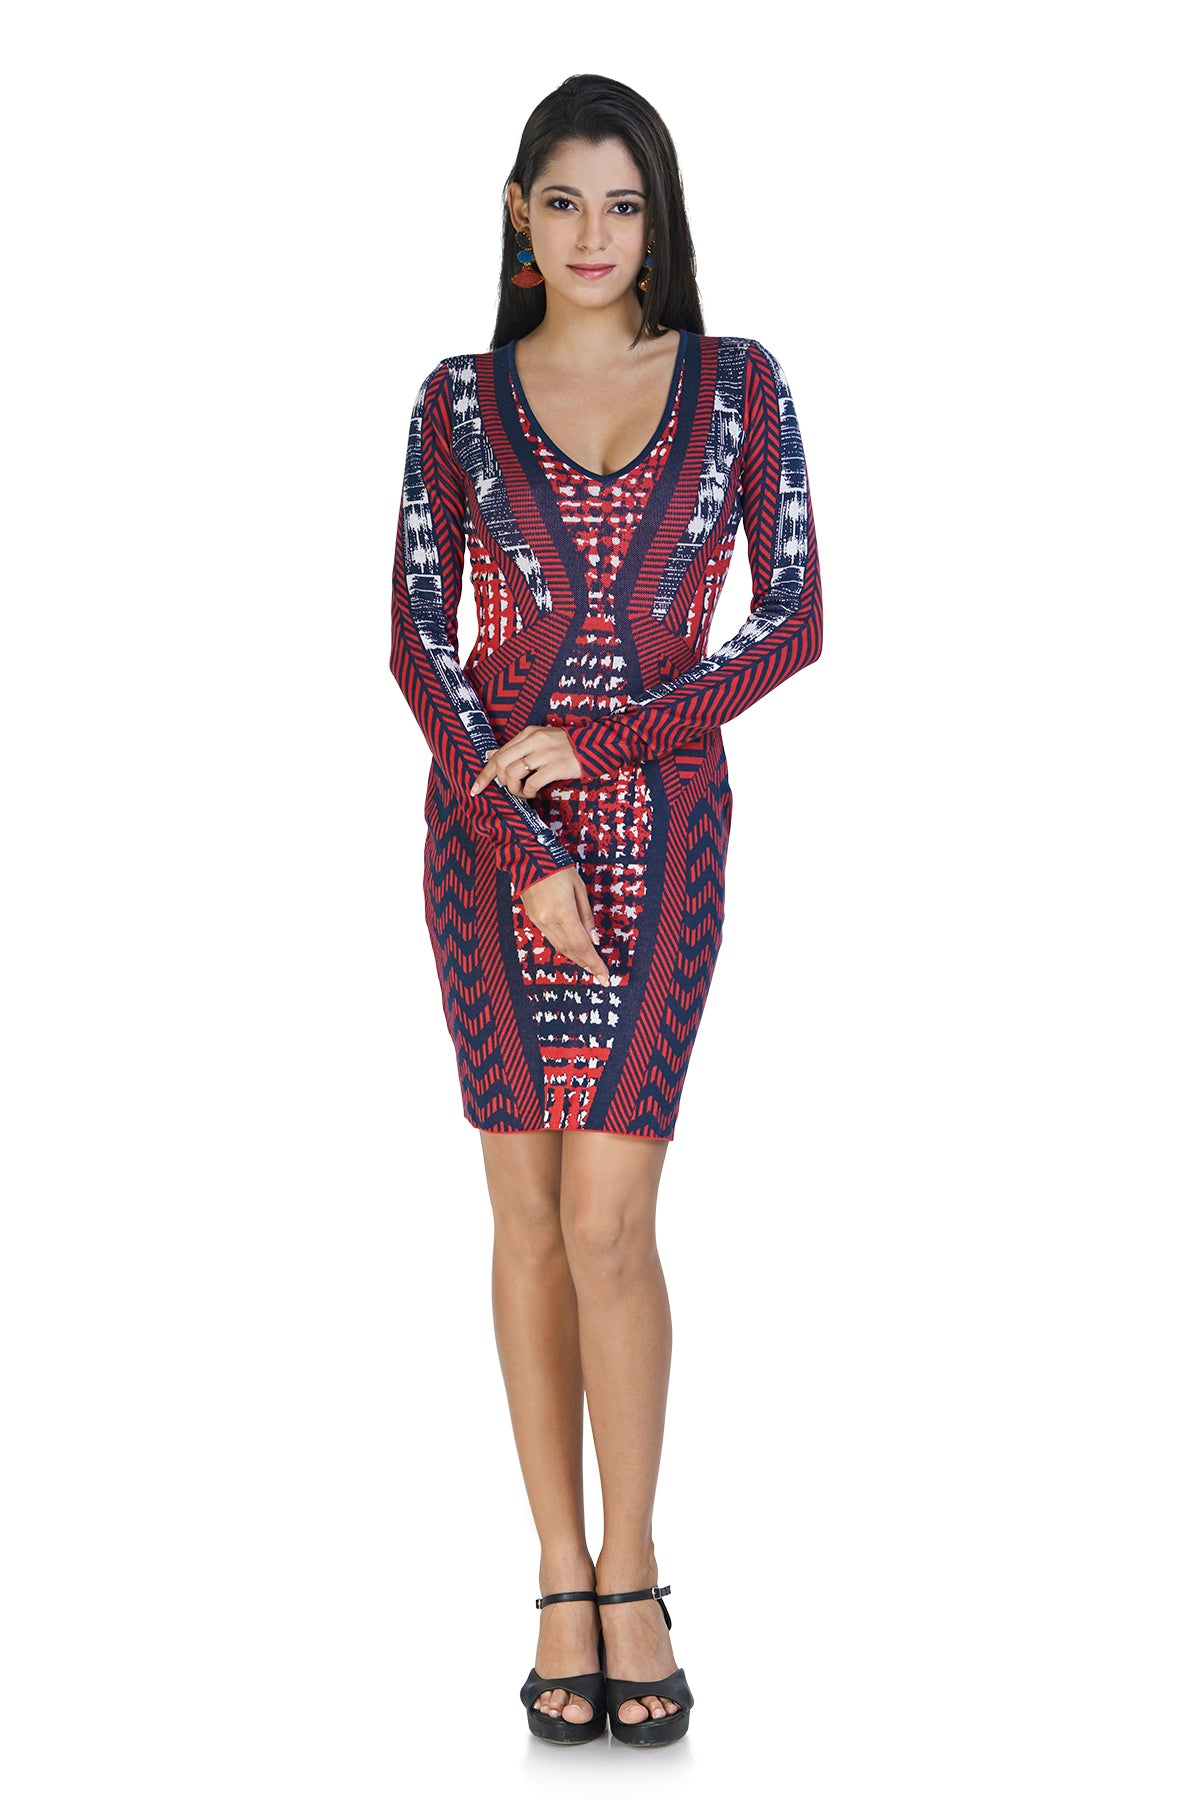 Red and blue knit dress that gives a flattering hourglass shape. The intrinsic patterns catch your eye and keep them intact.